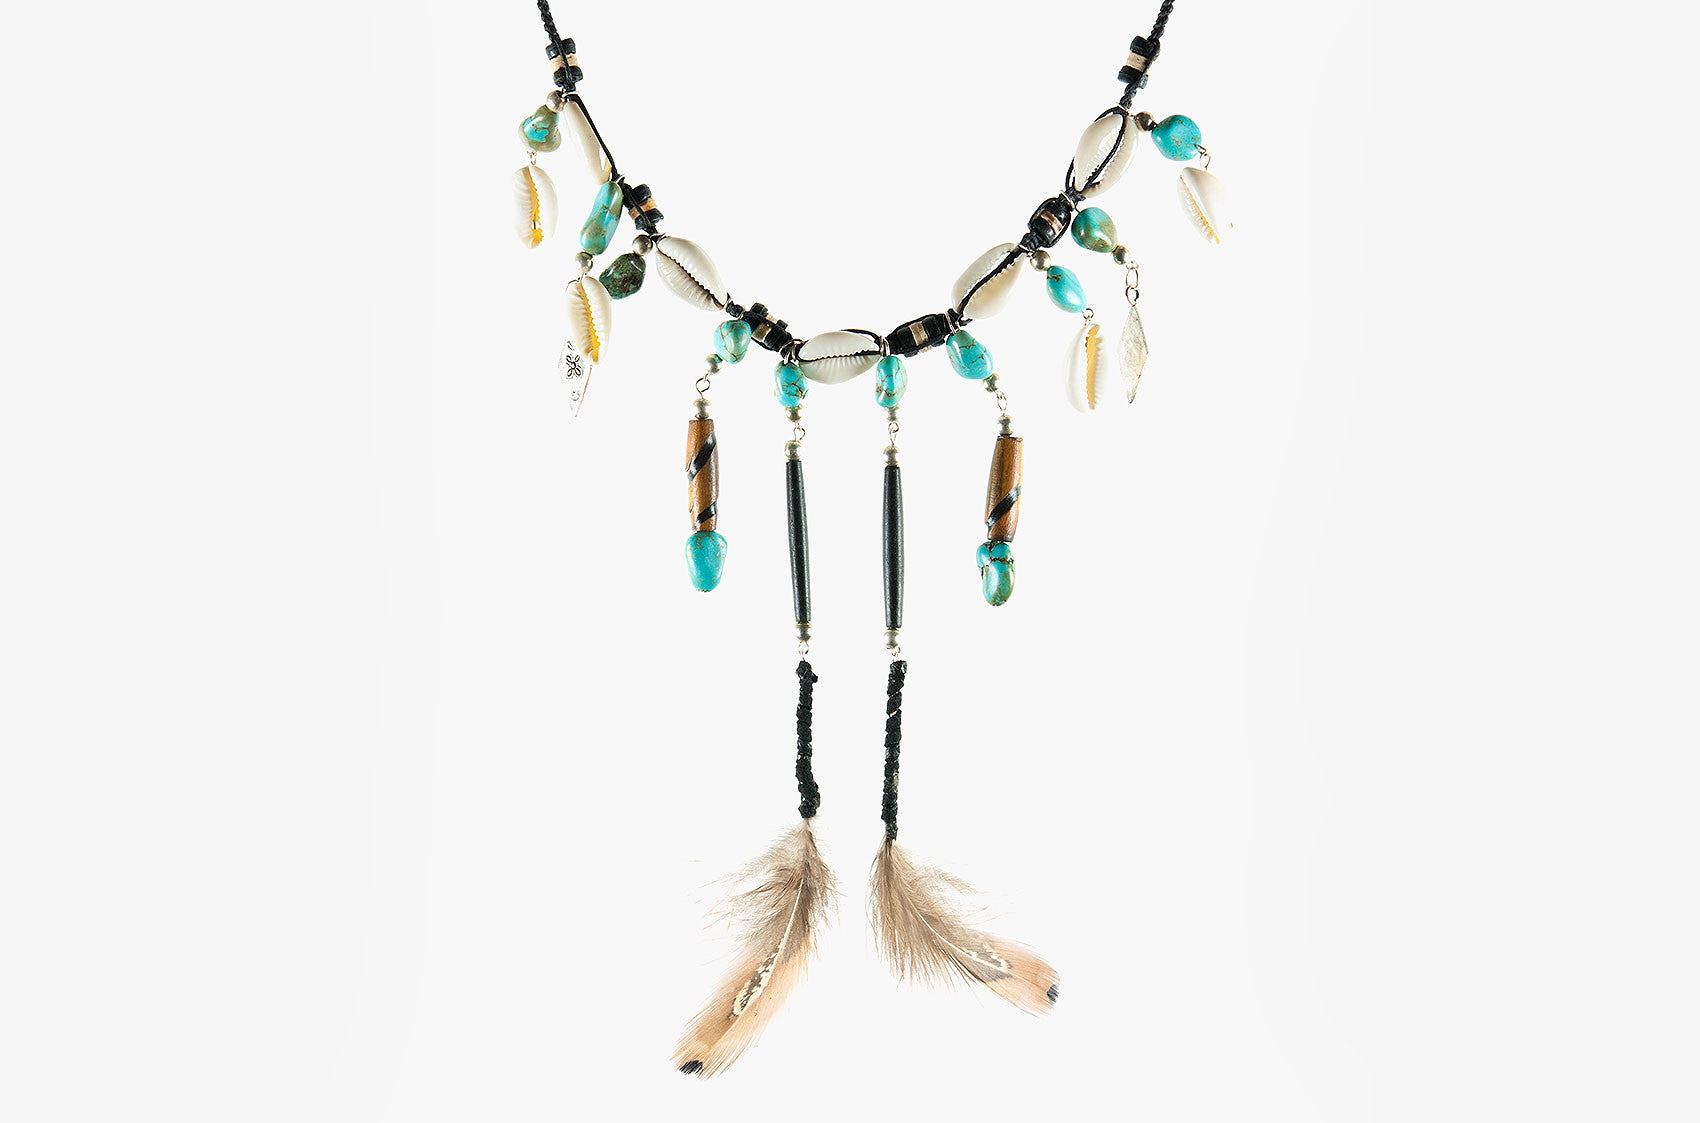 Buffalo Girl Sky Dancer necklace